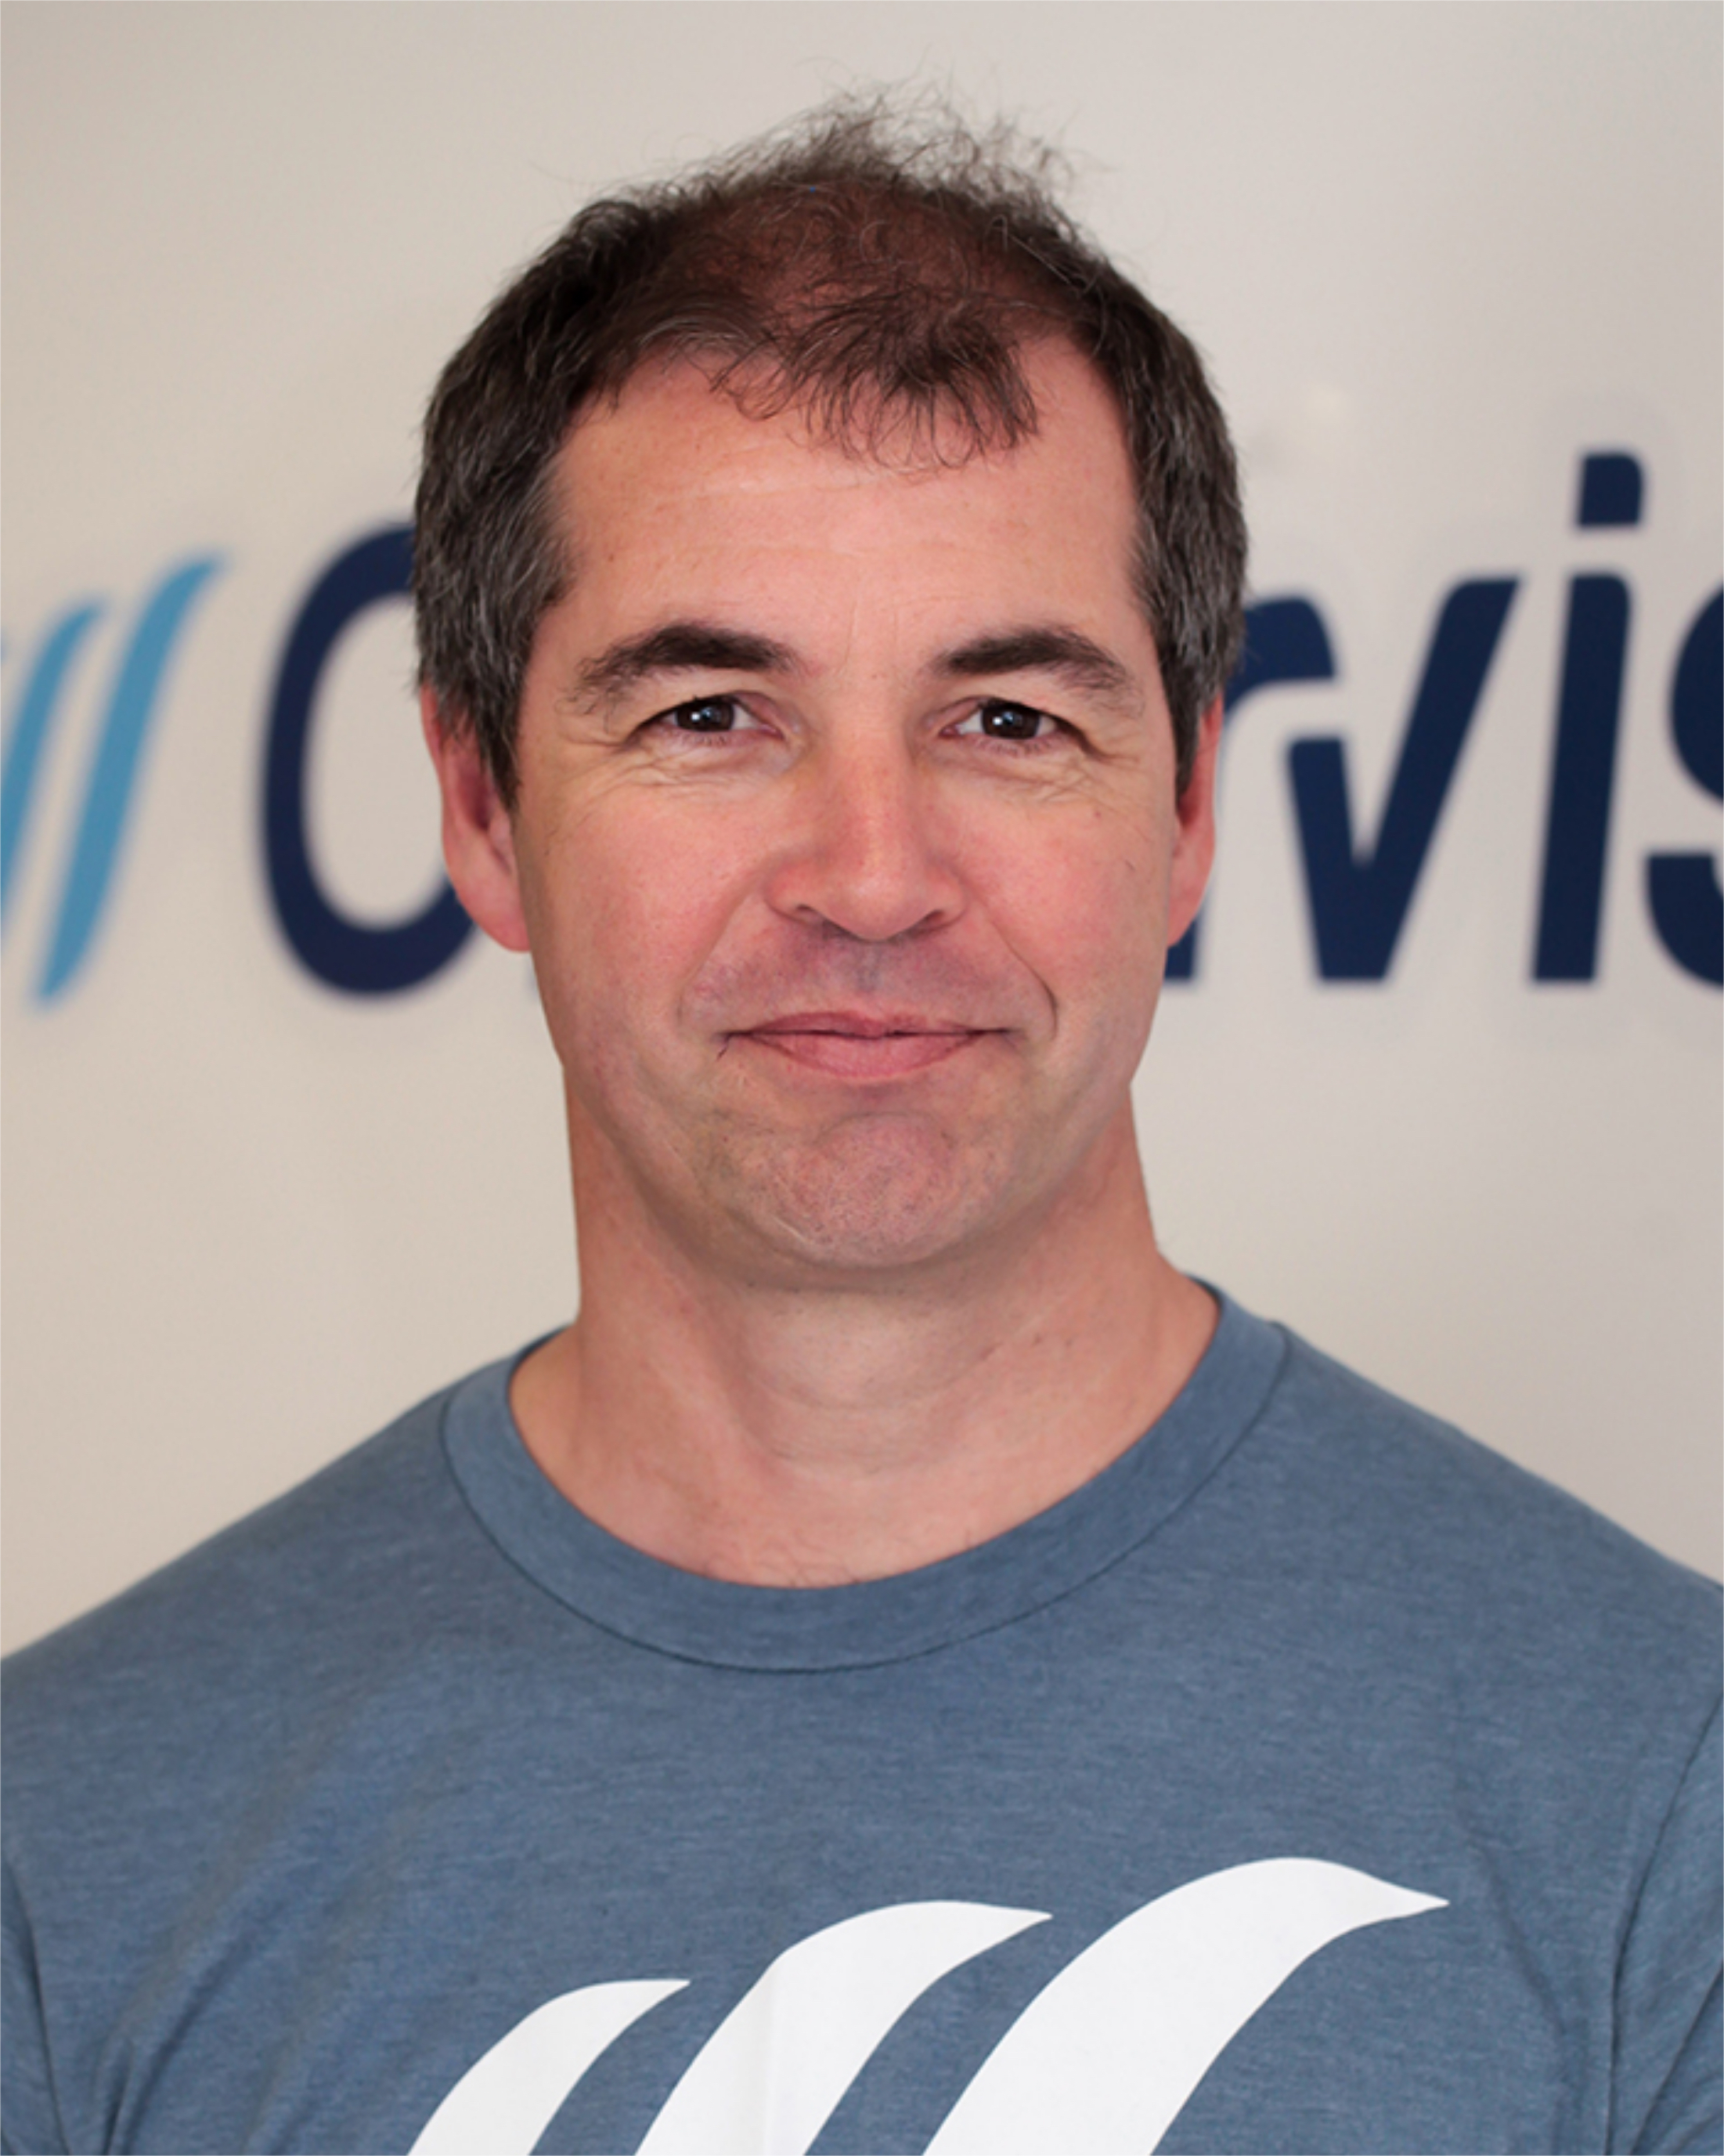 Gerry Tombs, founder and CEO of Clearvision